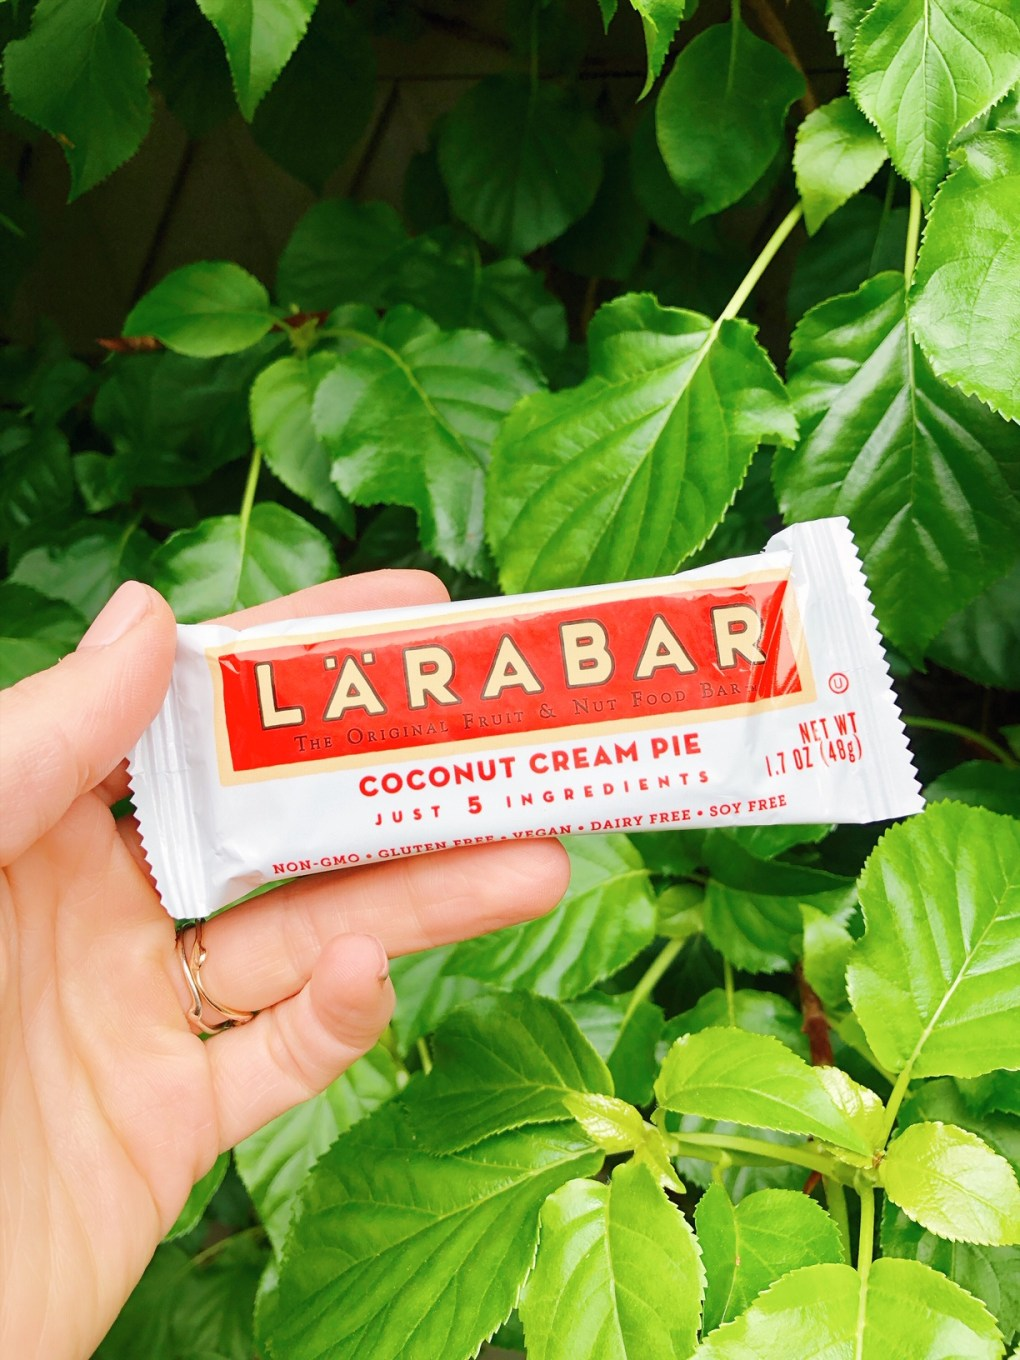 Holding a coconut cream pie lara bar in front of a green bush